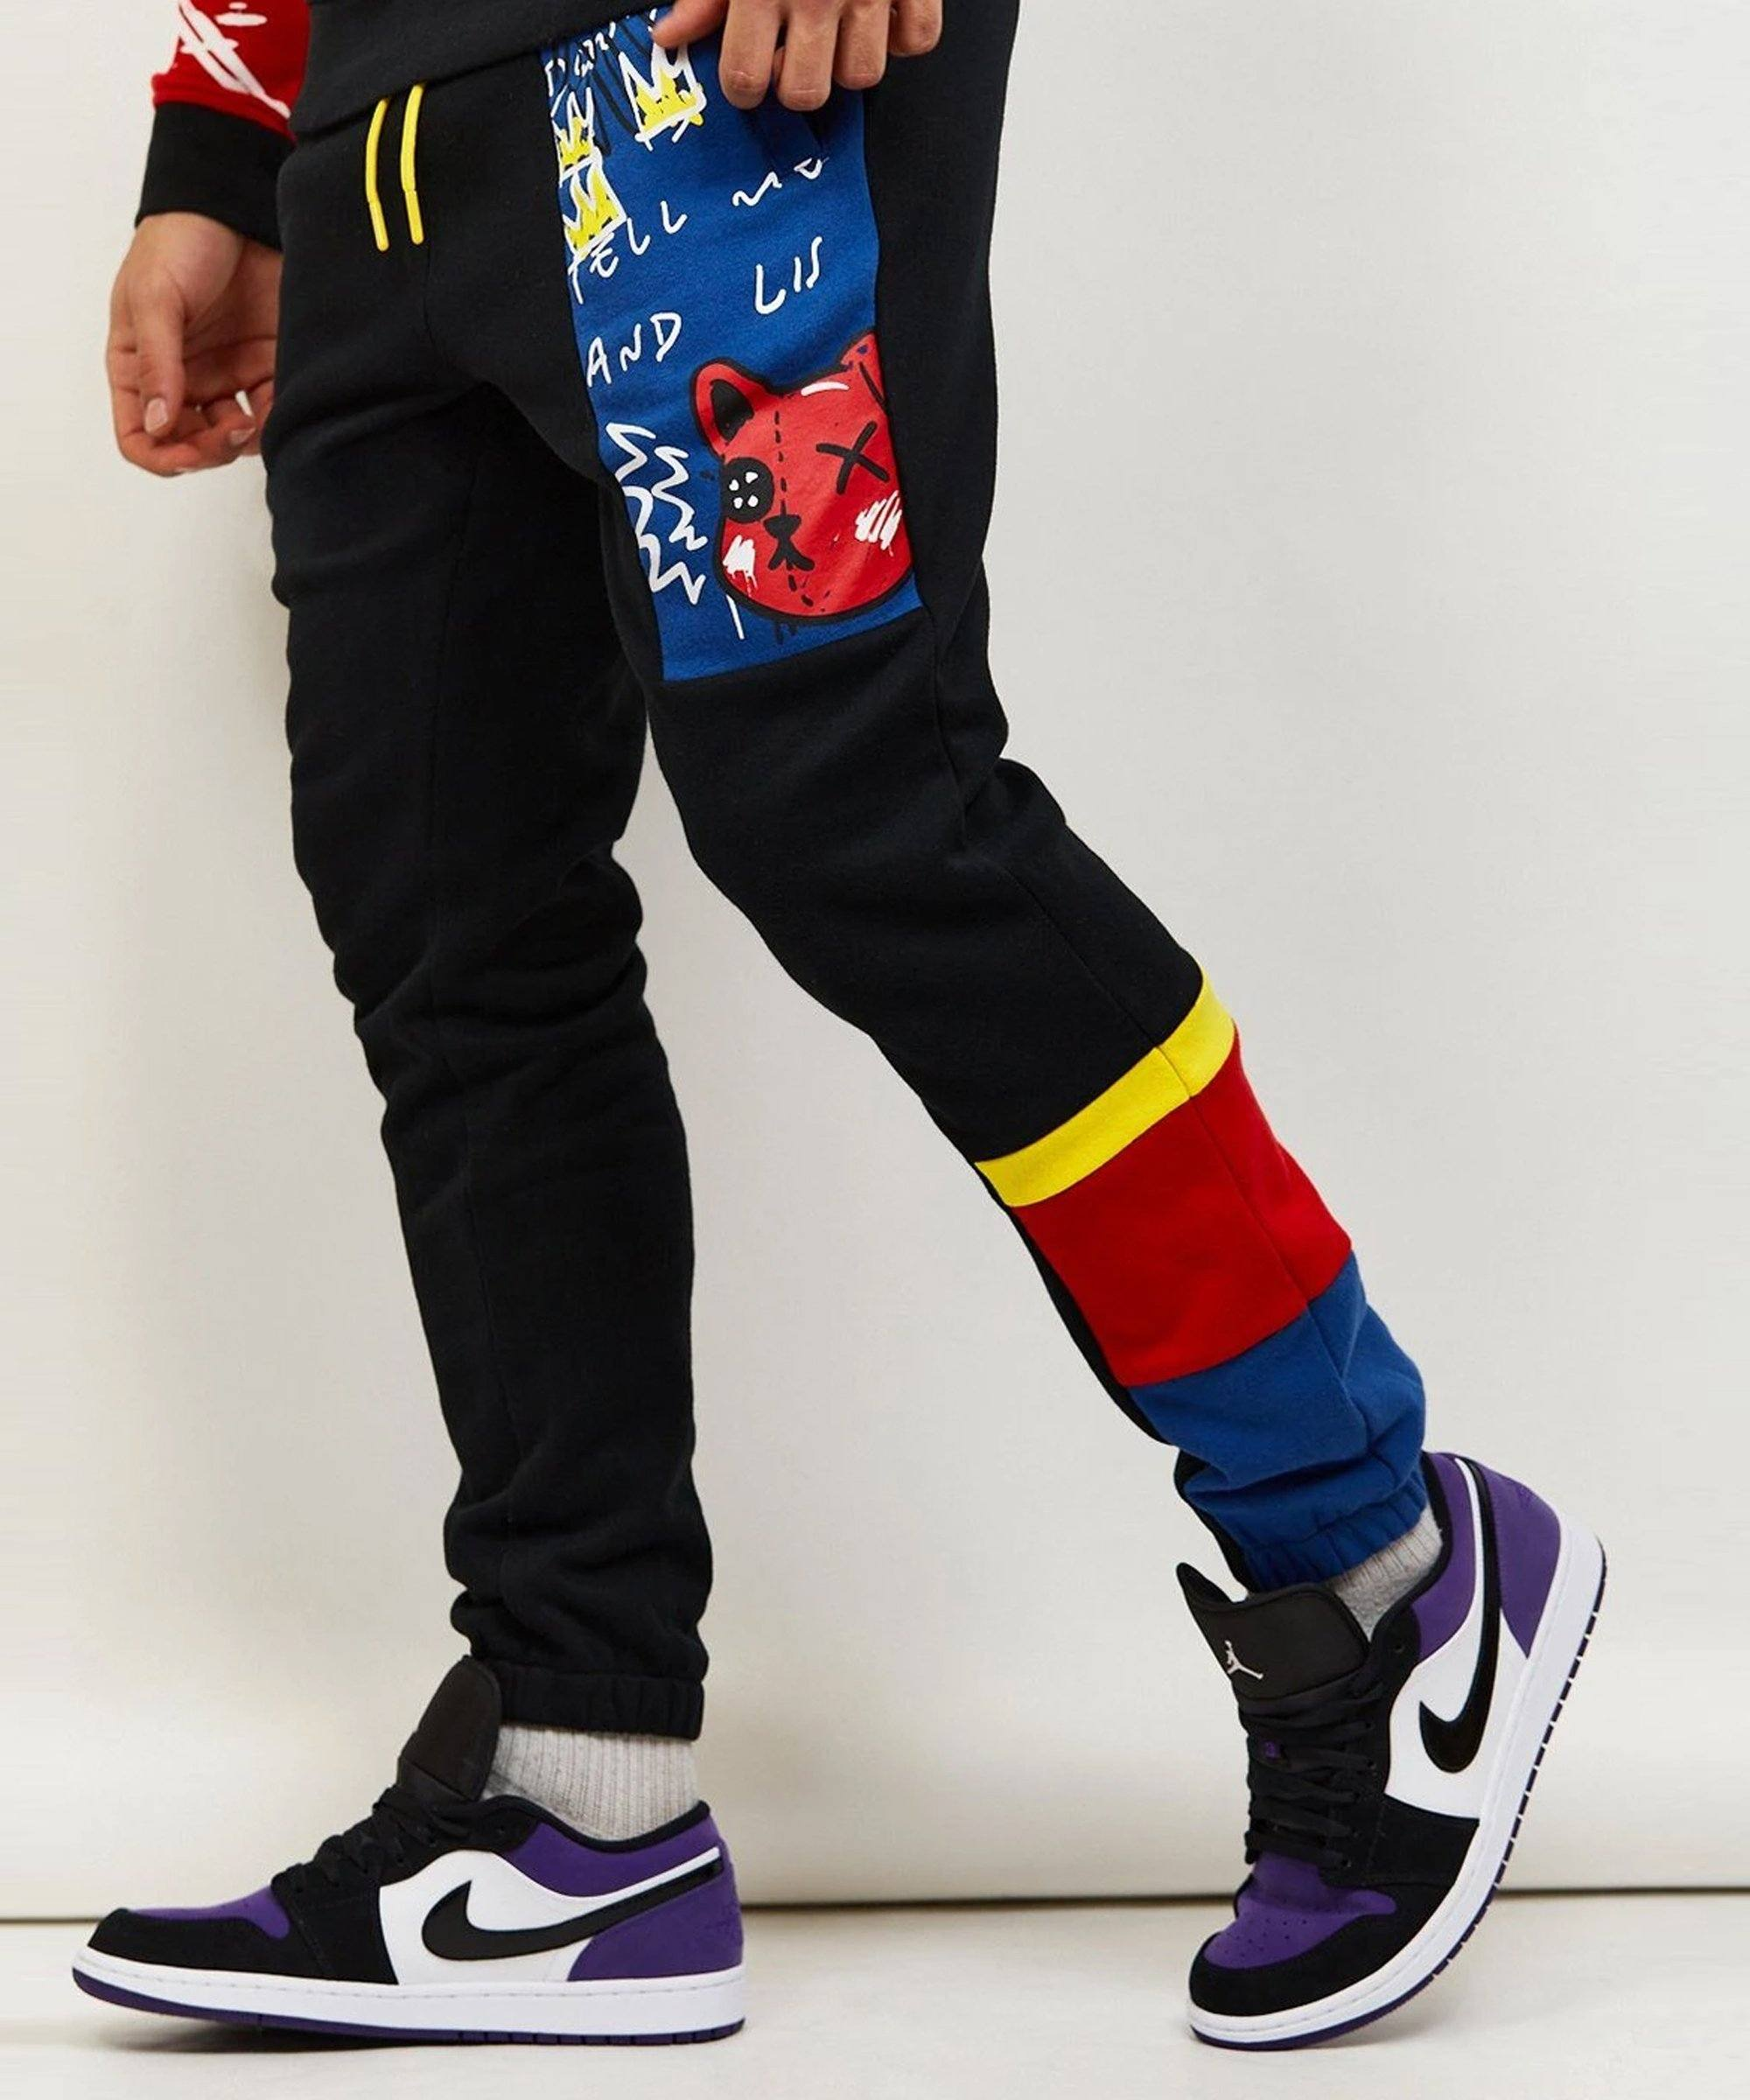 FLYEST TEDDY SWEATPANTS Reason Clothing